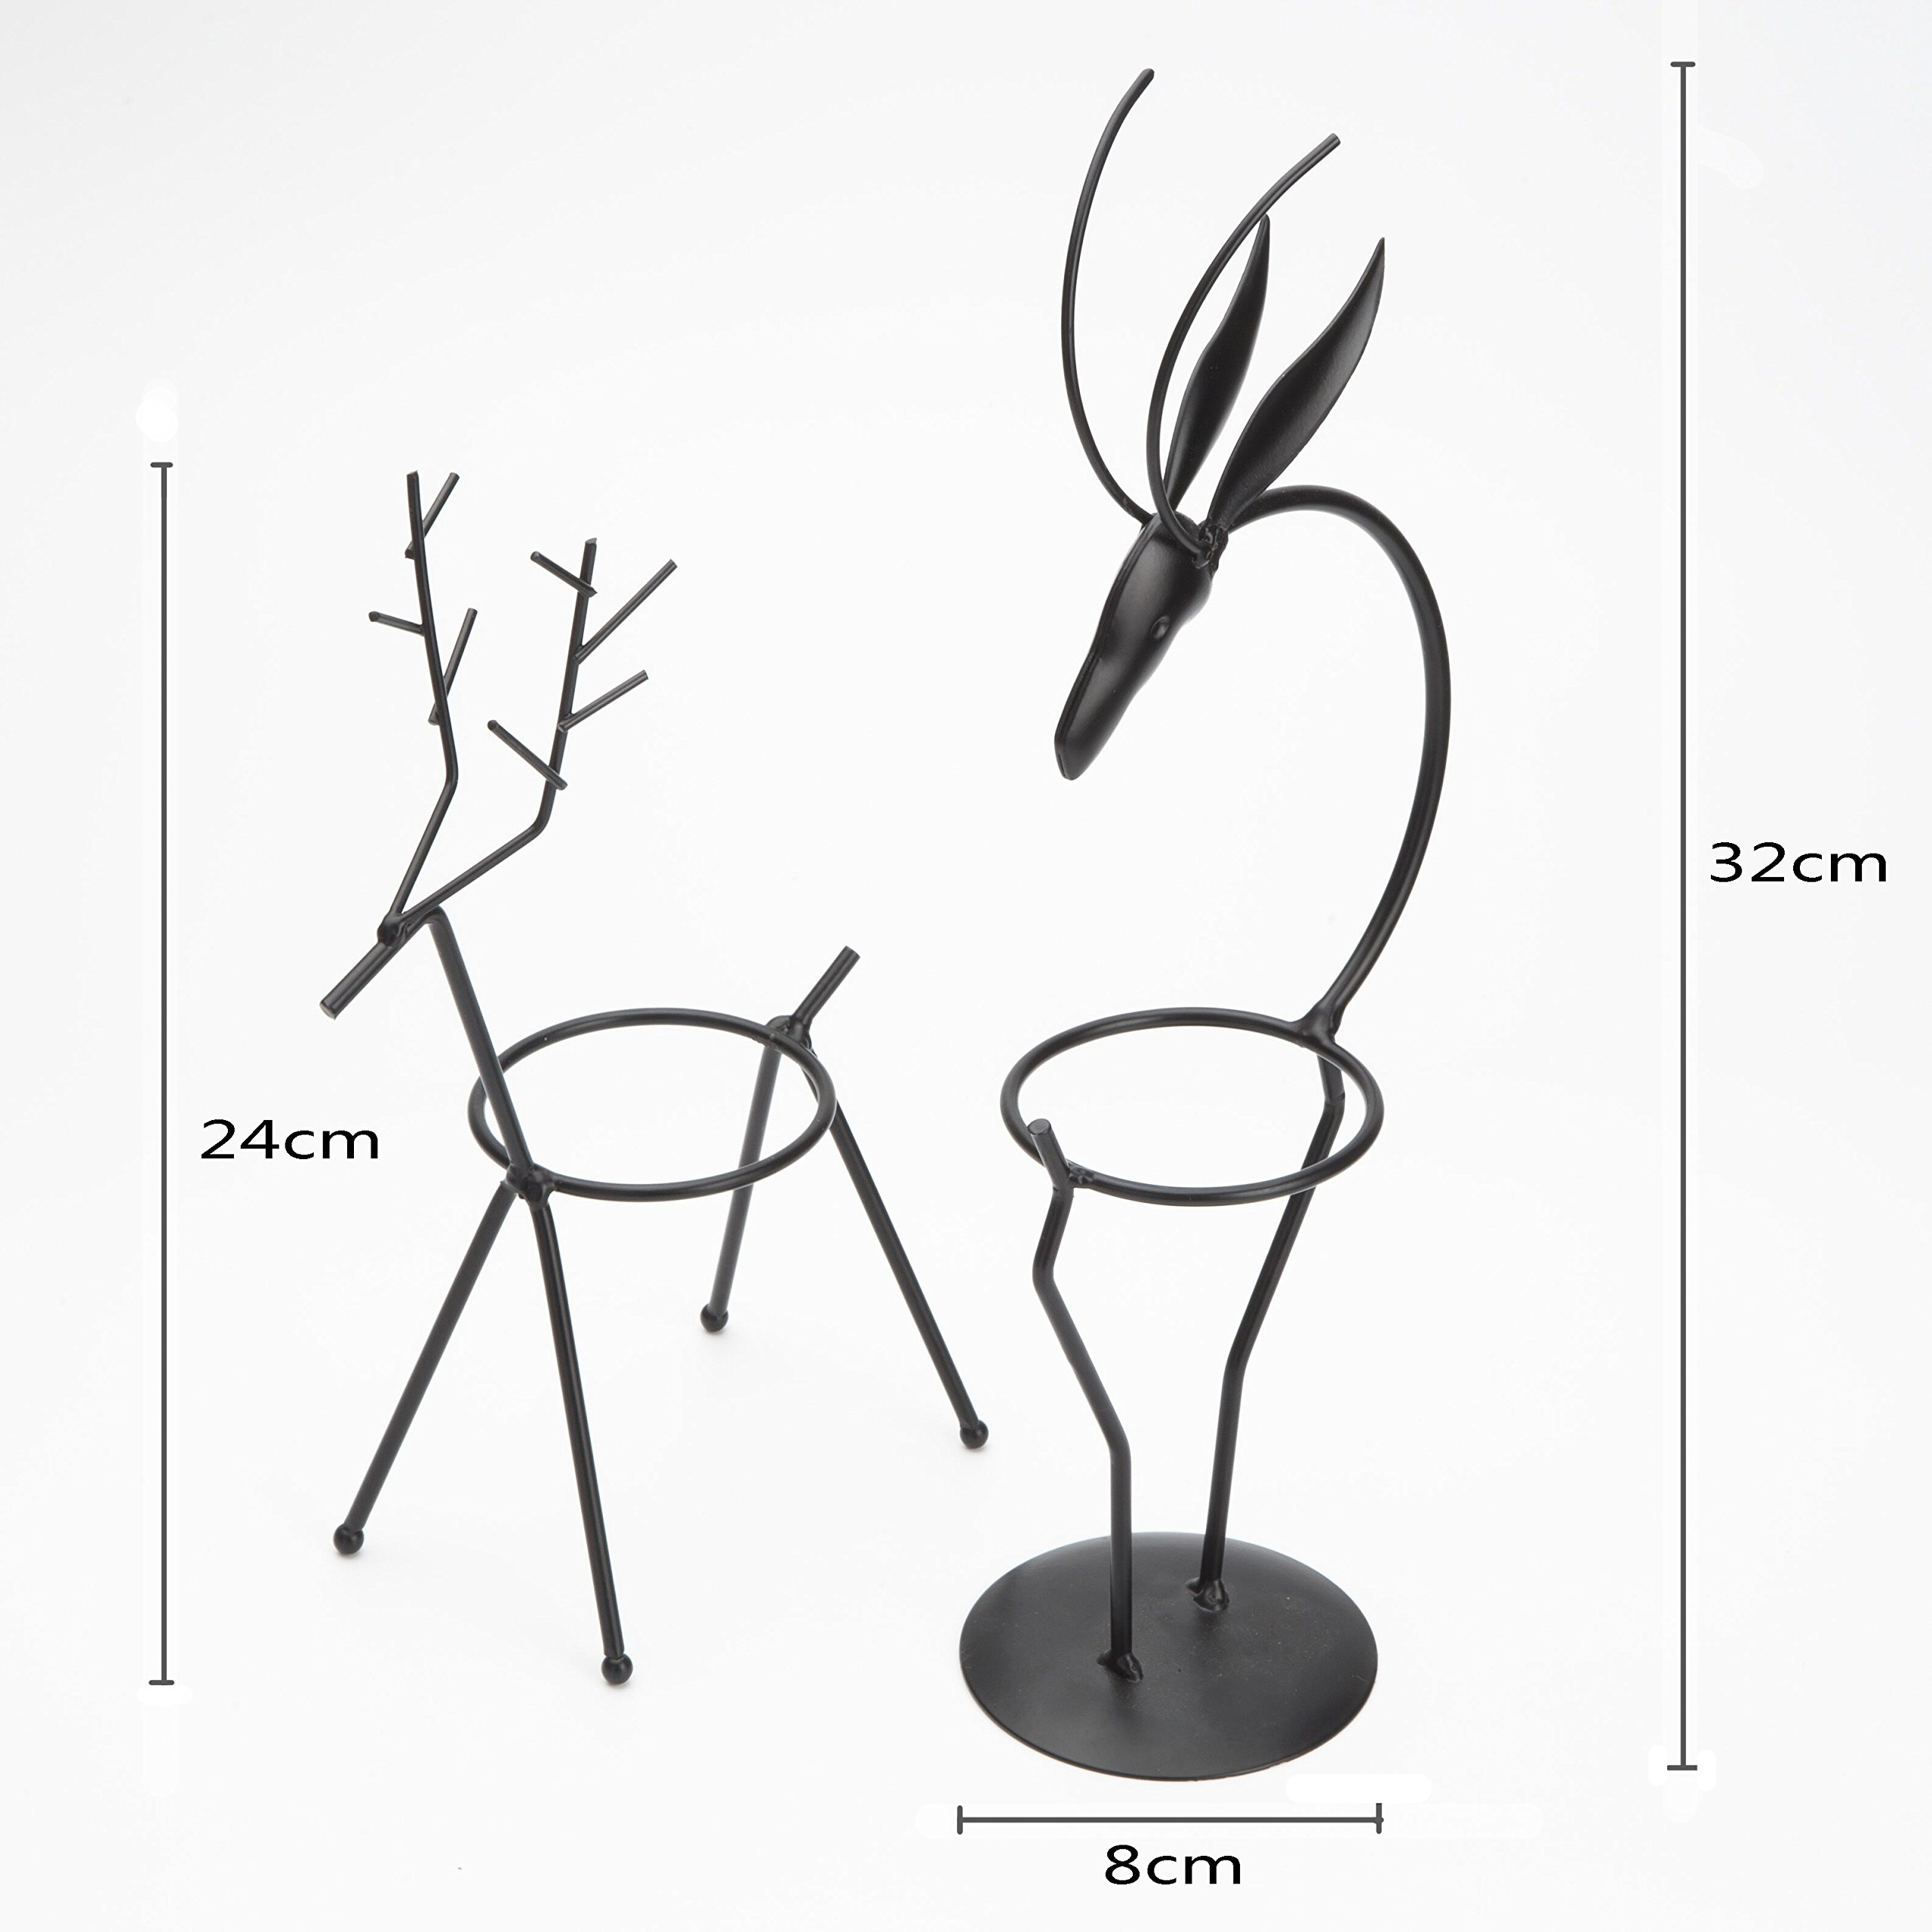 Metal Handicraft Stand Deer with European Elements Minimalist Design ,2 Pieces Deer and 2 Pieces ''Drgon Wagging Tail'' Brain Teaser Toys ,Best Gift for Kids/Adults by Like KongMing (Image #4)